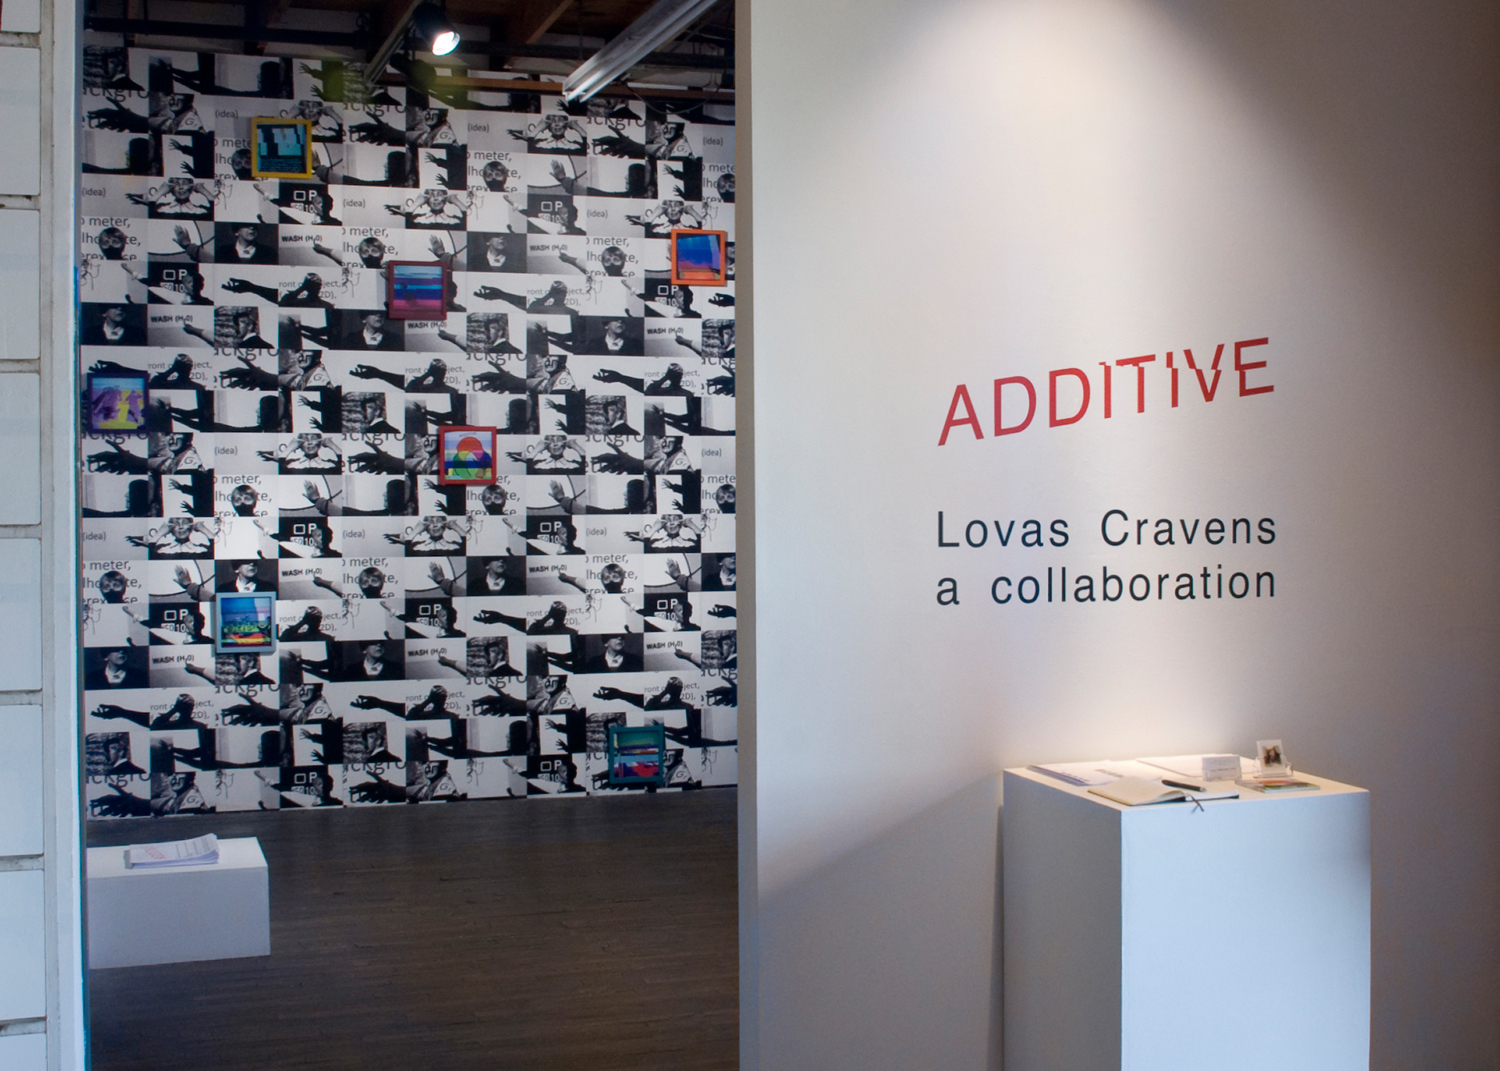 ADDITIVE Lovas Cravens a collaboration, 2017, 500X Gallery, Dallas, TX